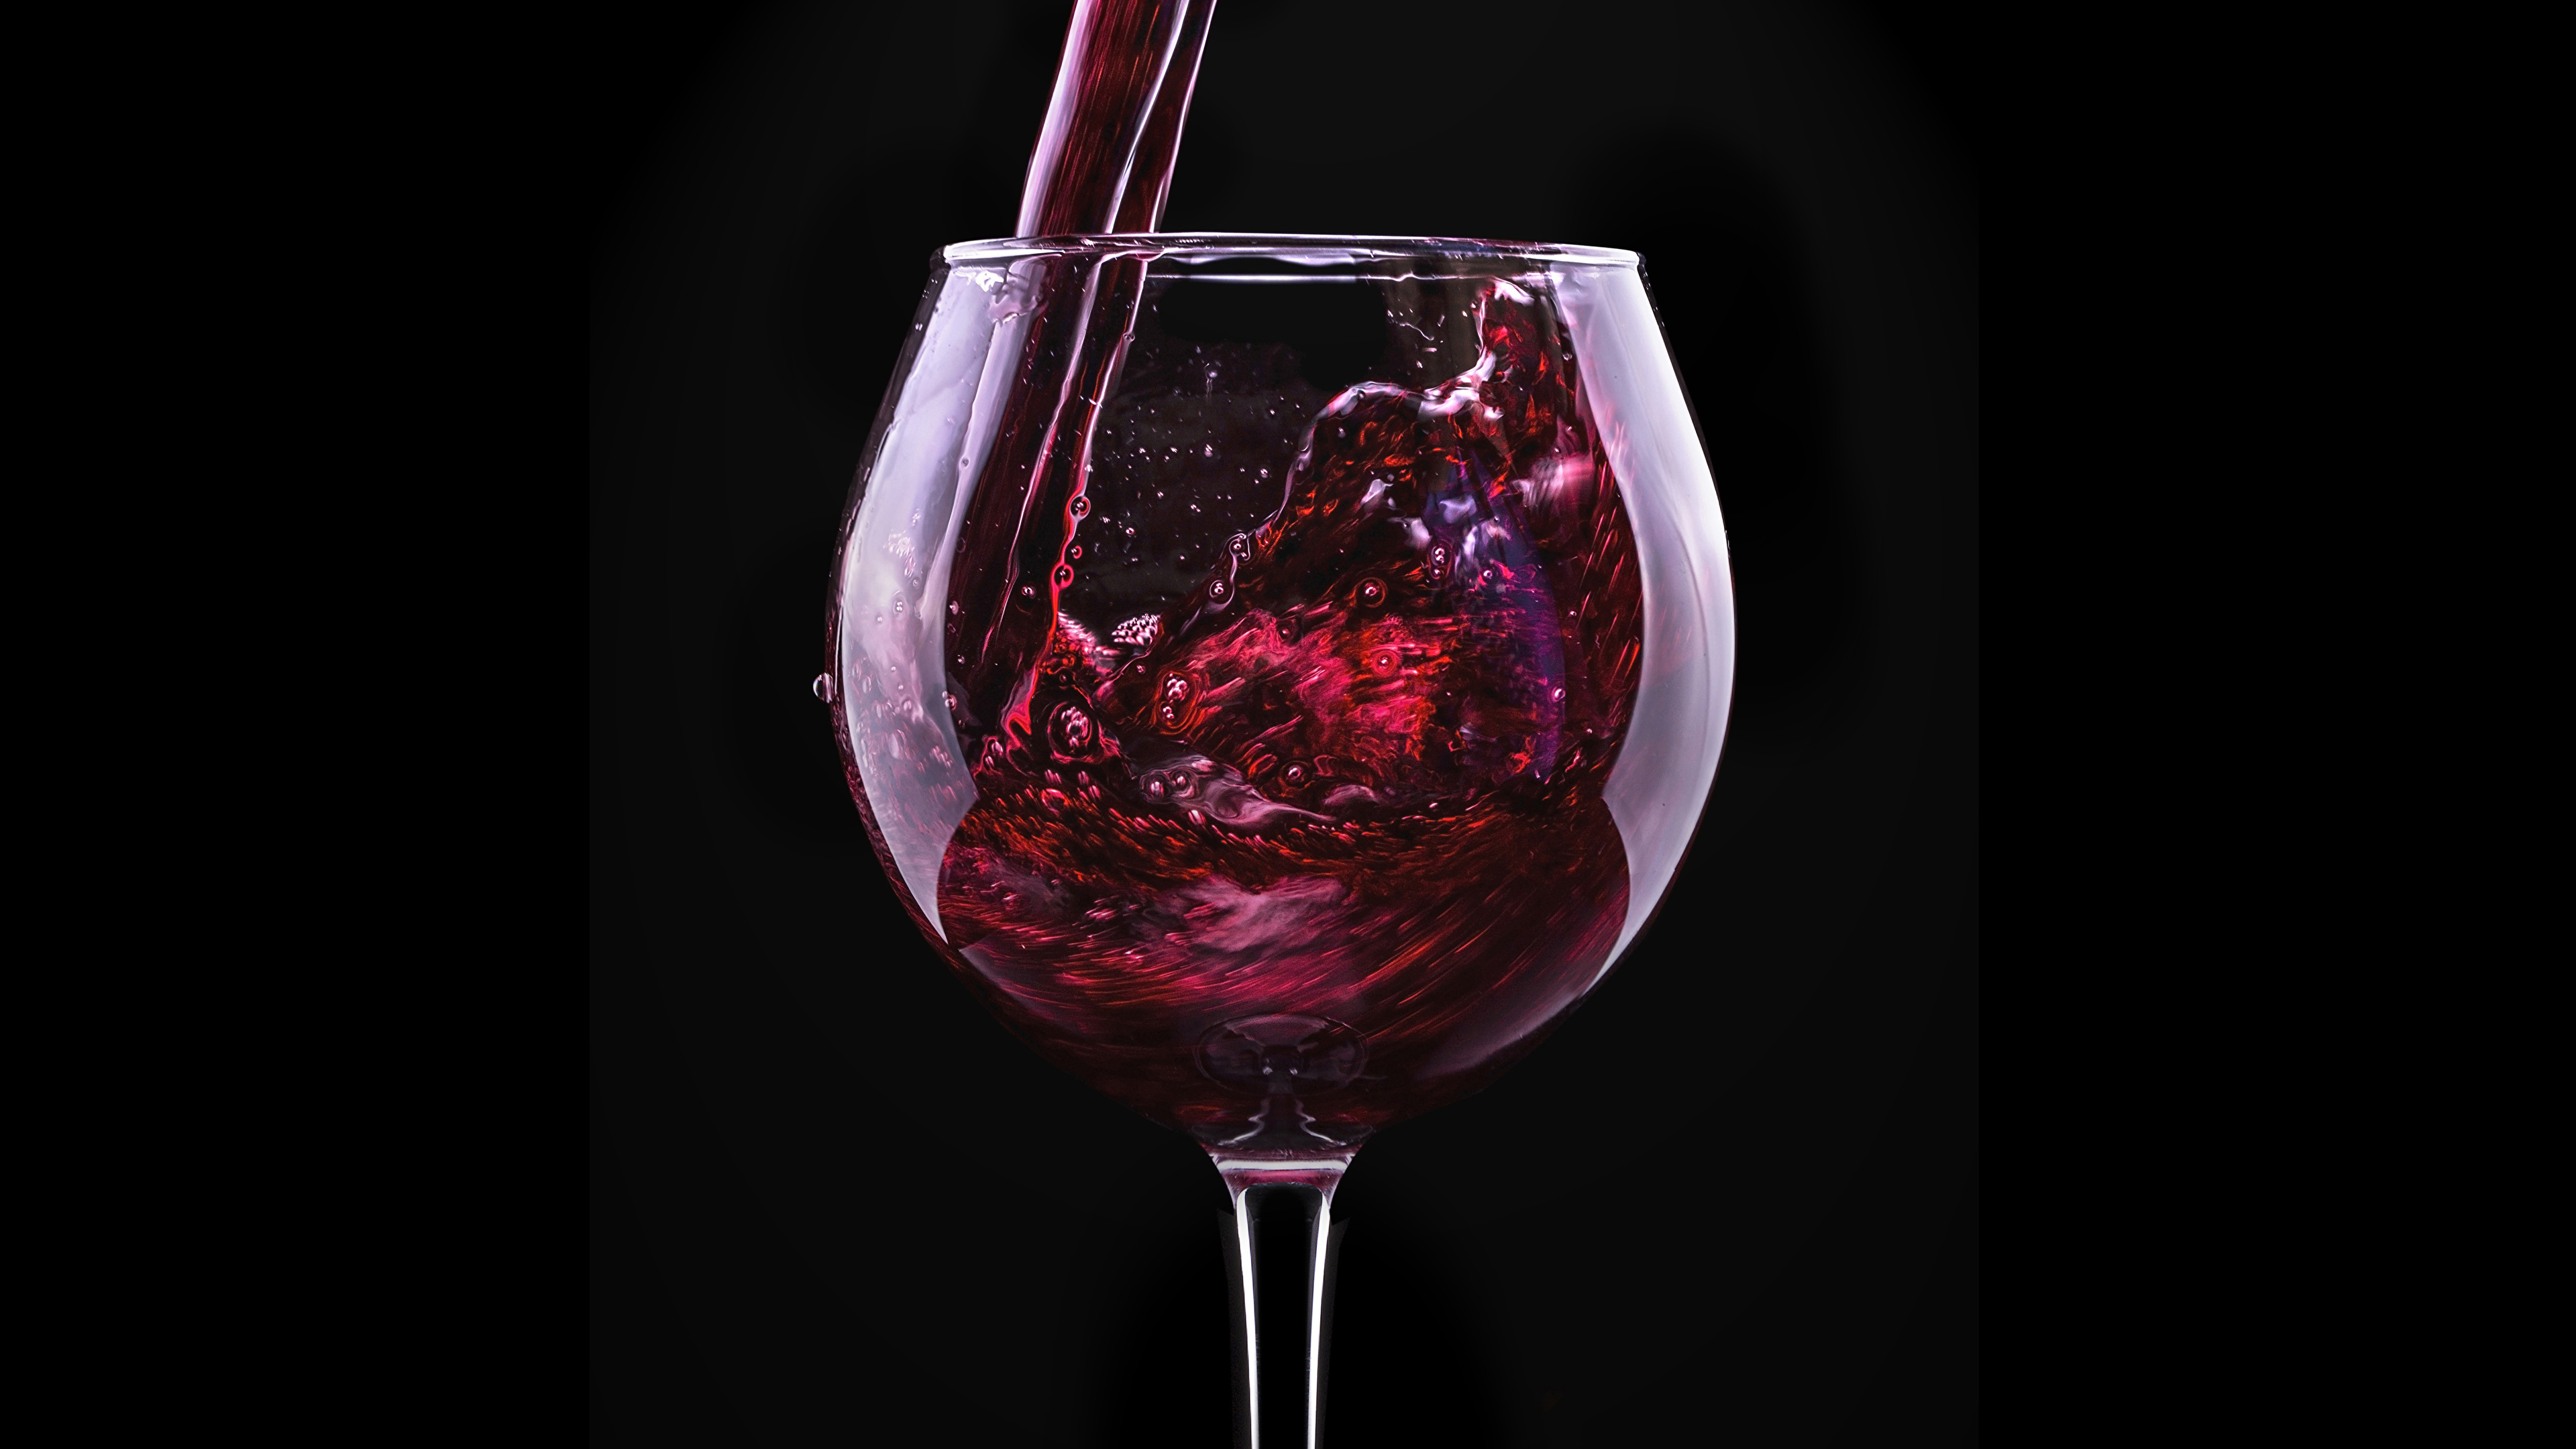 Desktop Wallpapers Red Rose Wine Flower Food Stemware 3840x2160